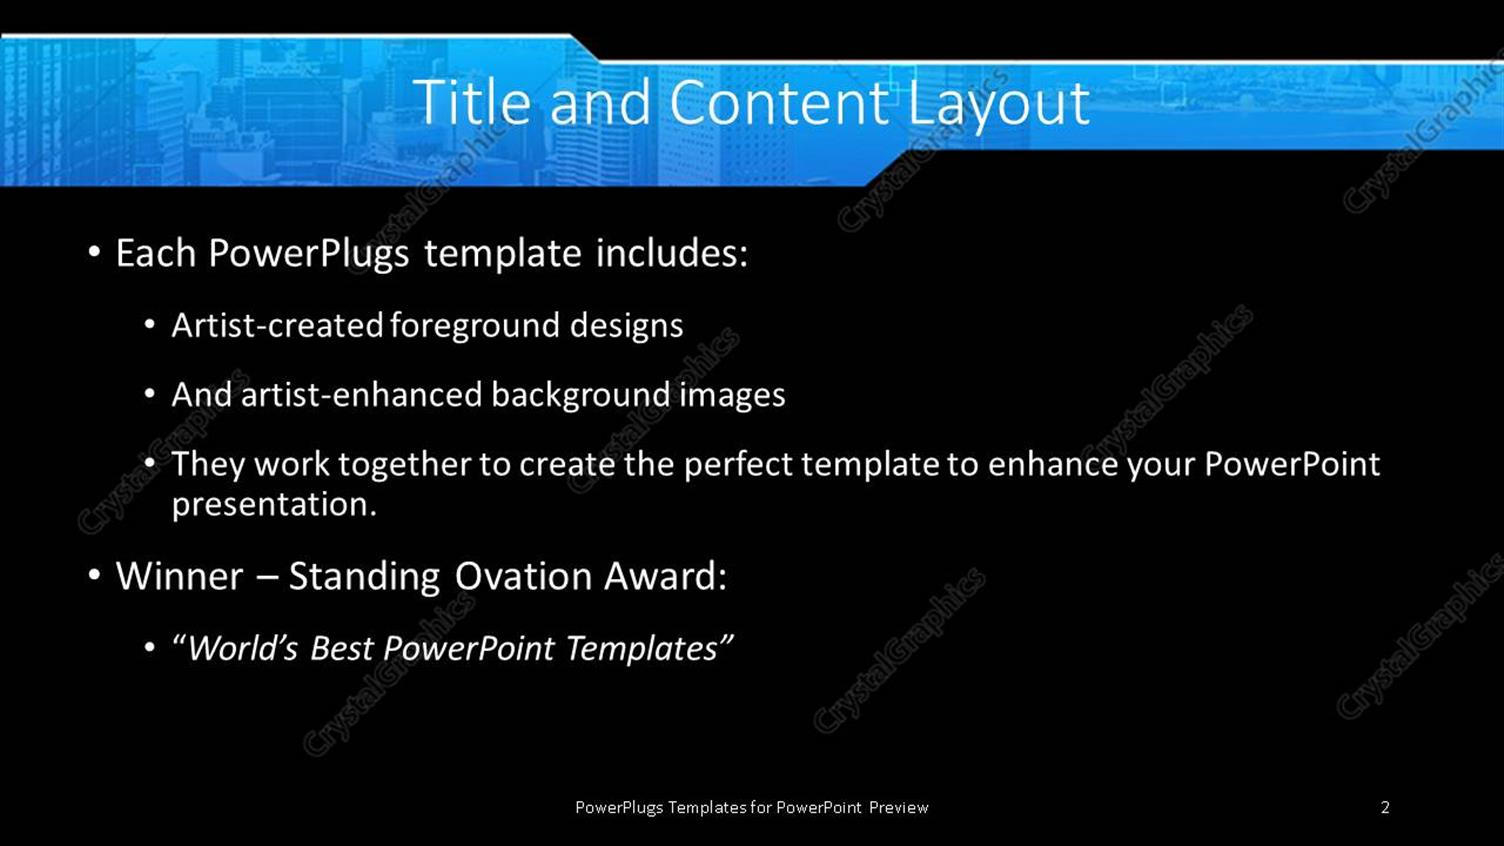 powerpoint template: landscape view of mega city with skyscrapers, Modern powerpoint